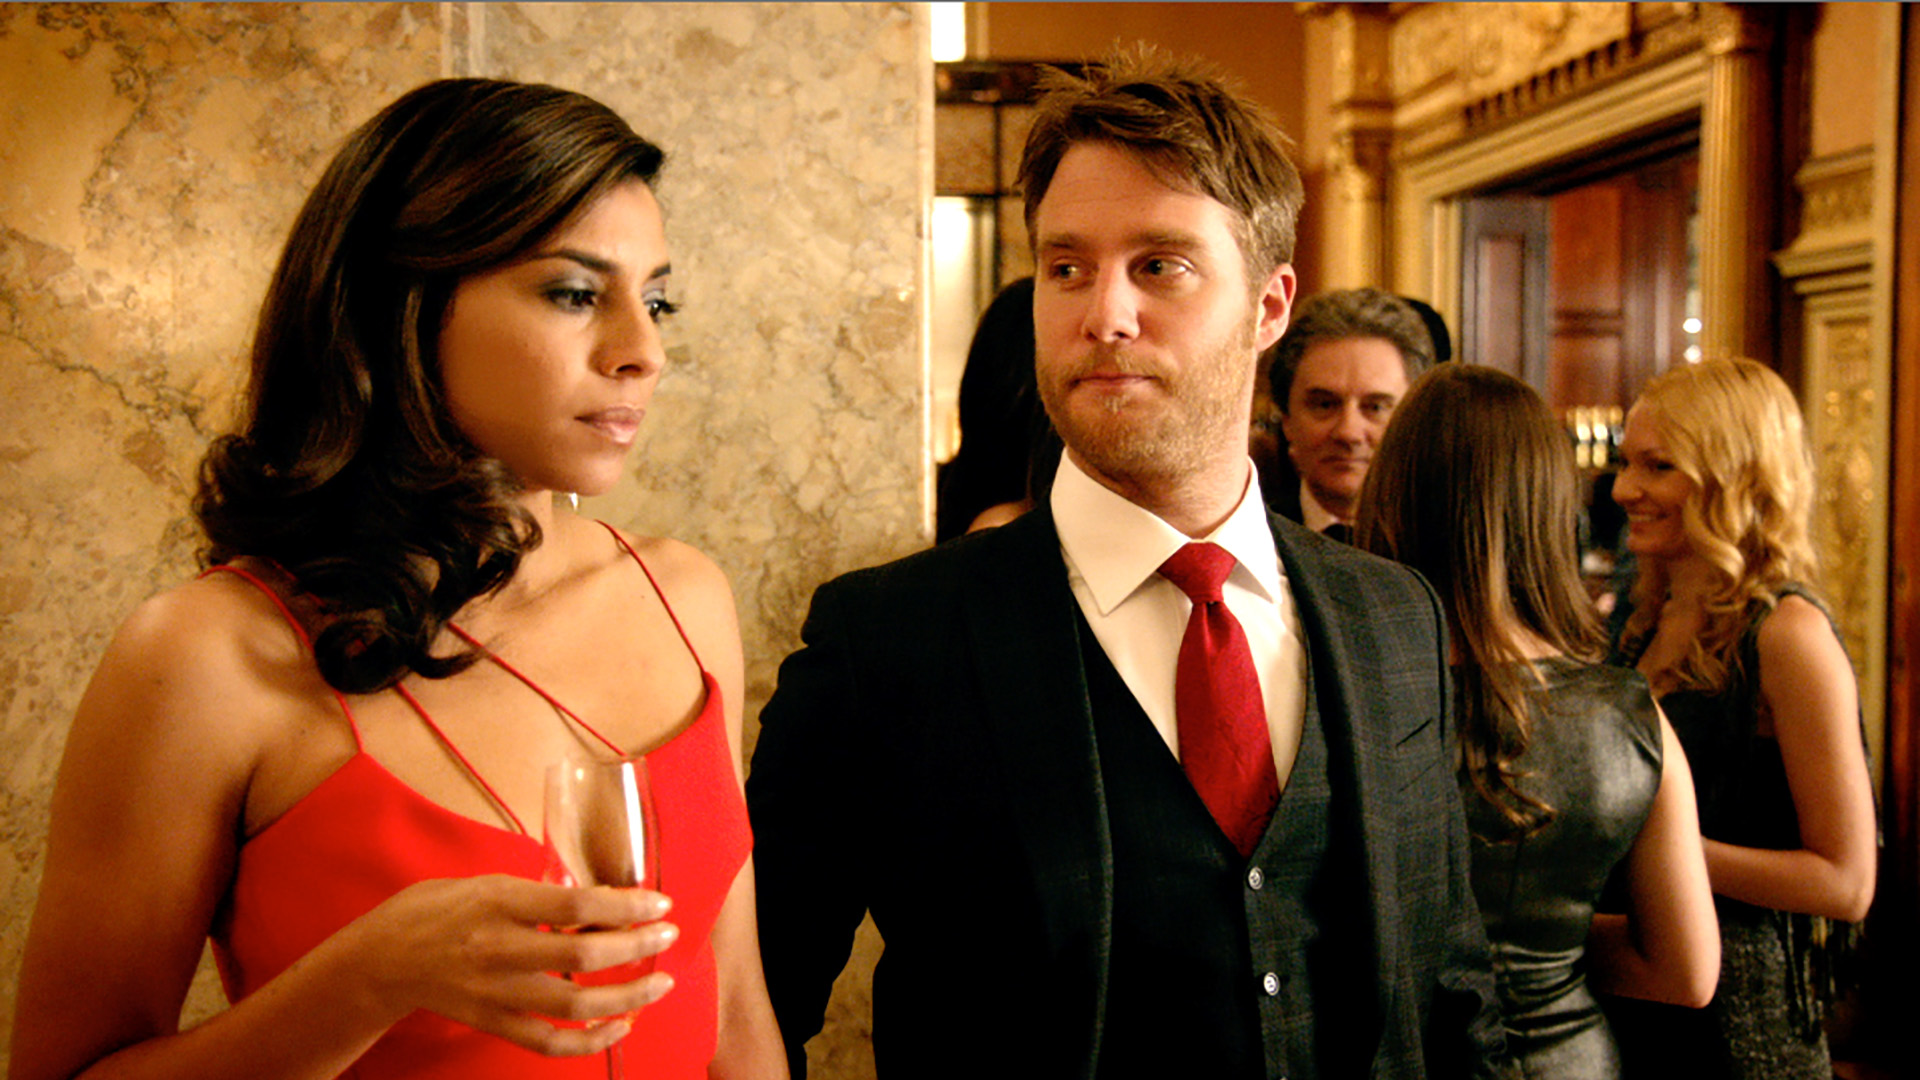 watch limitless online free with subtitles